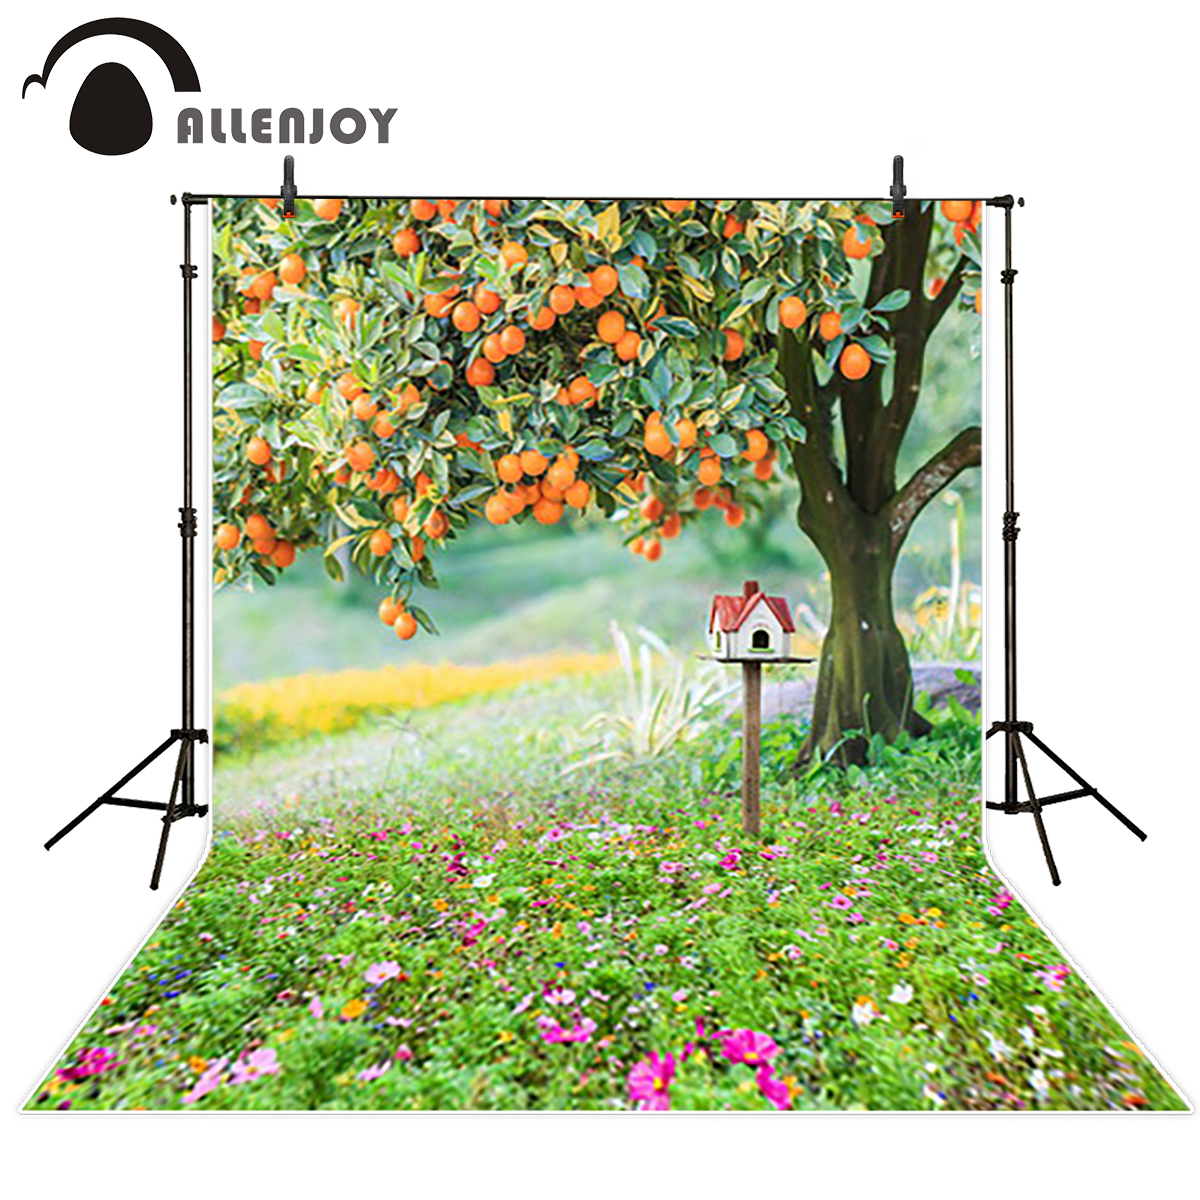 Allenjoy background for photographic studio Green Grassland Oranges tree photographic camera backdrop vinyl new arrivals blood oranges